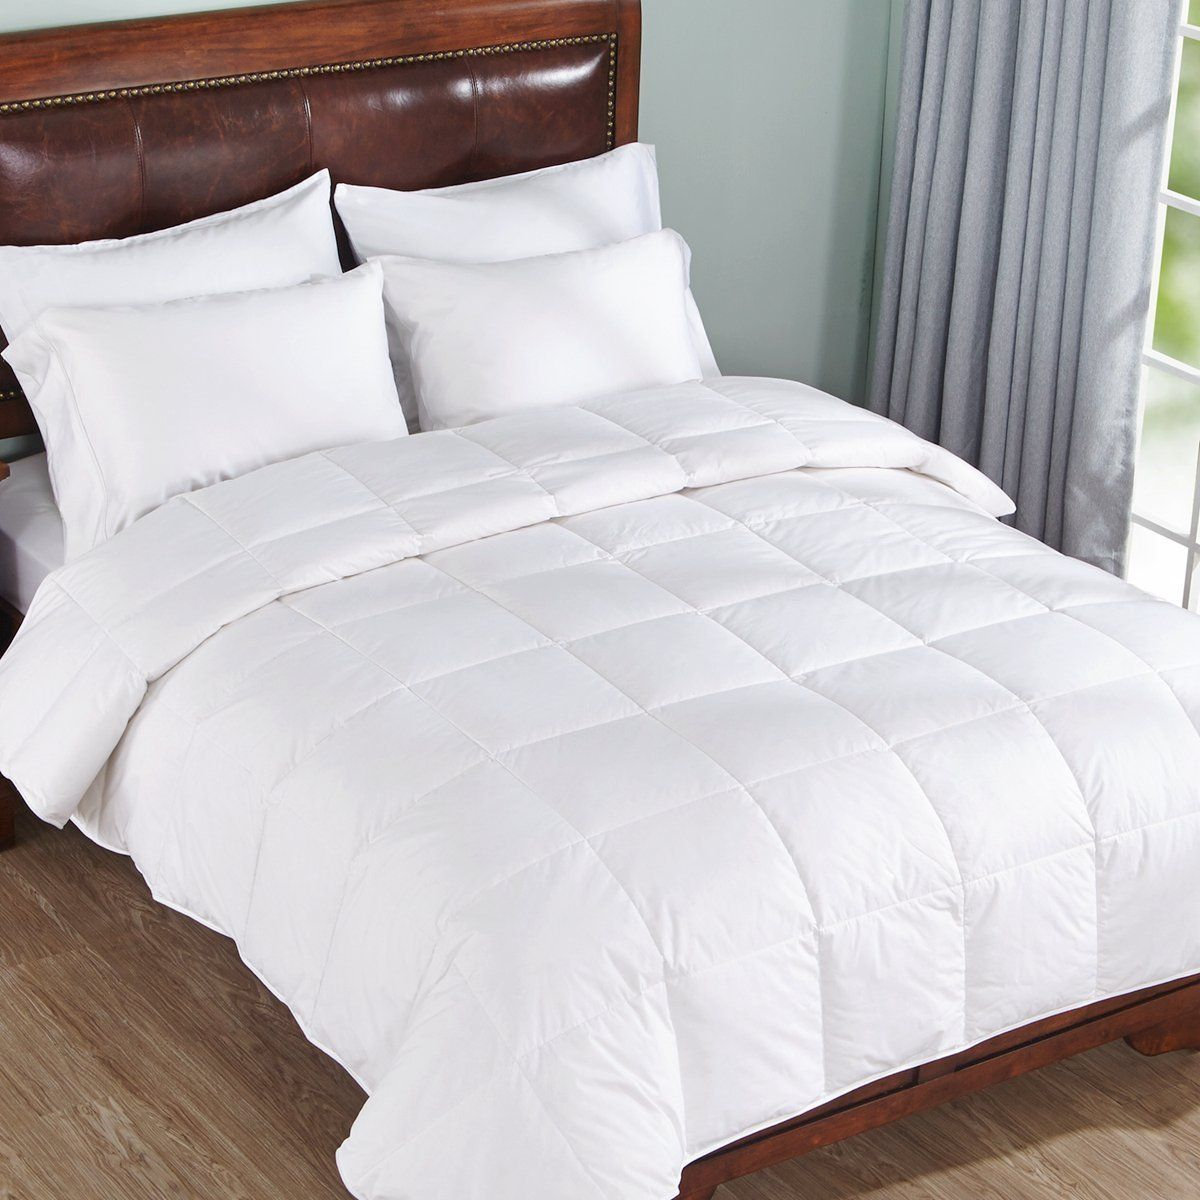 Kuber Industries Reversible Double Bed King Size Comforter/Duvet for Winters; Color - White, 230 x 254 Cm